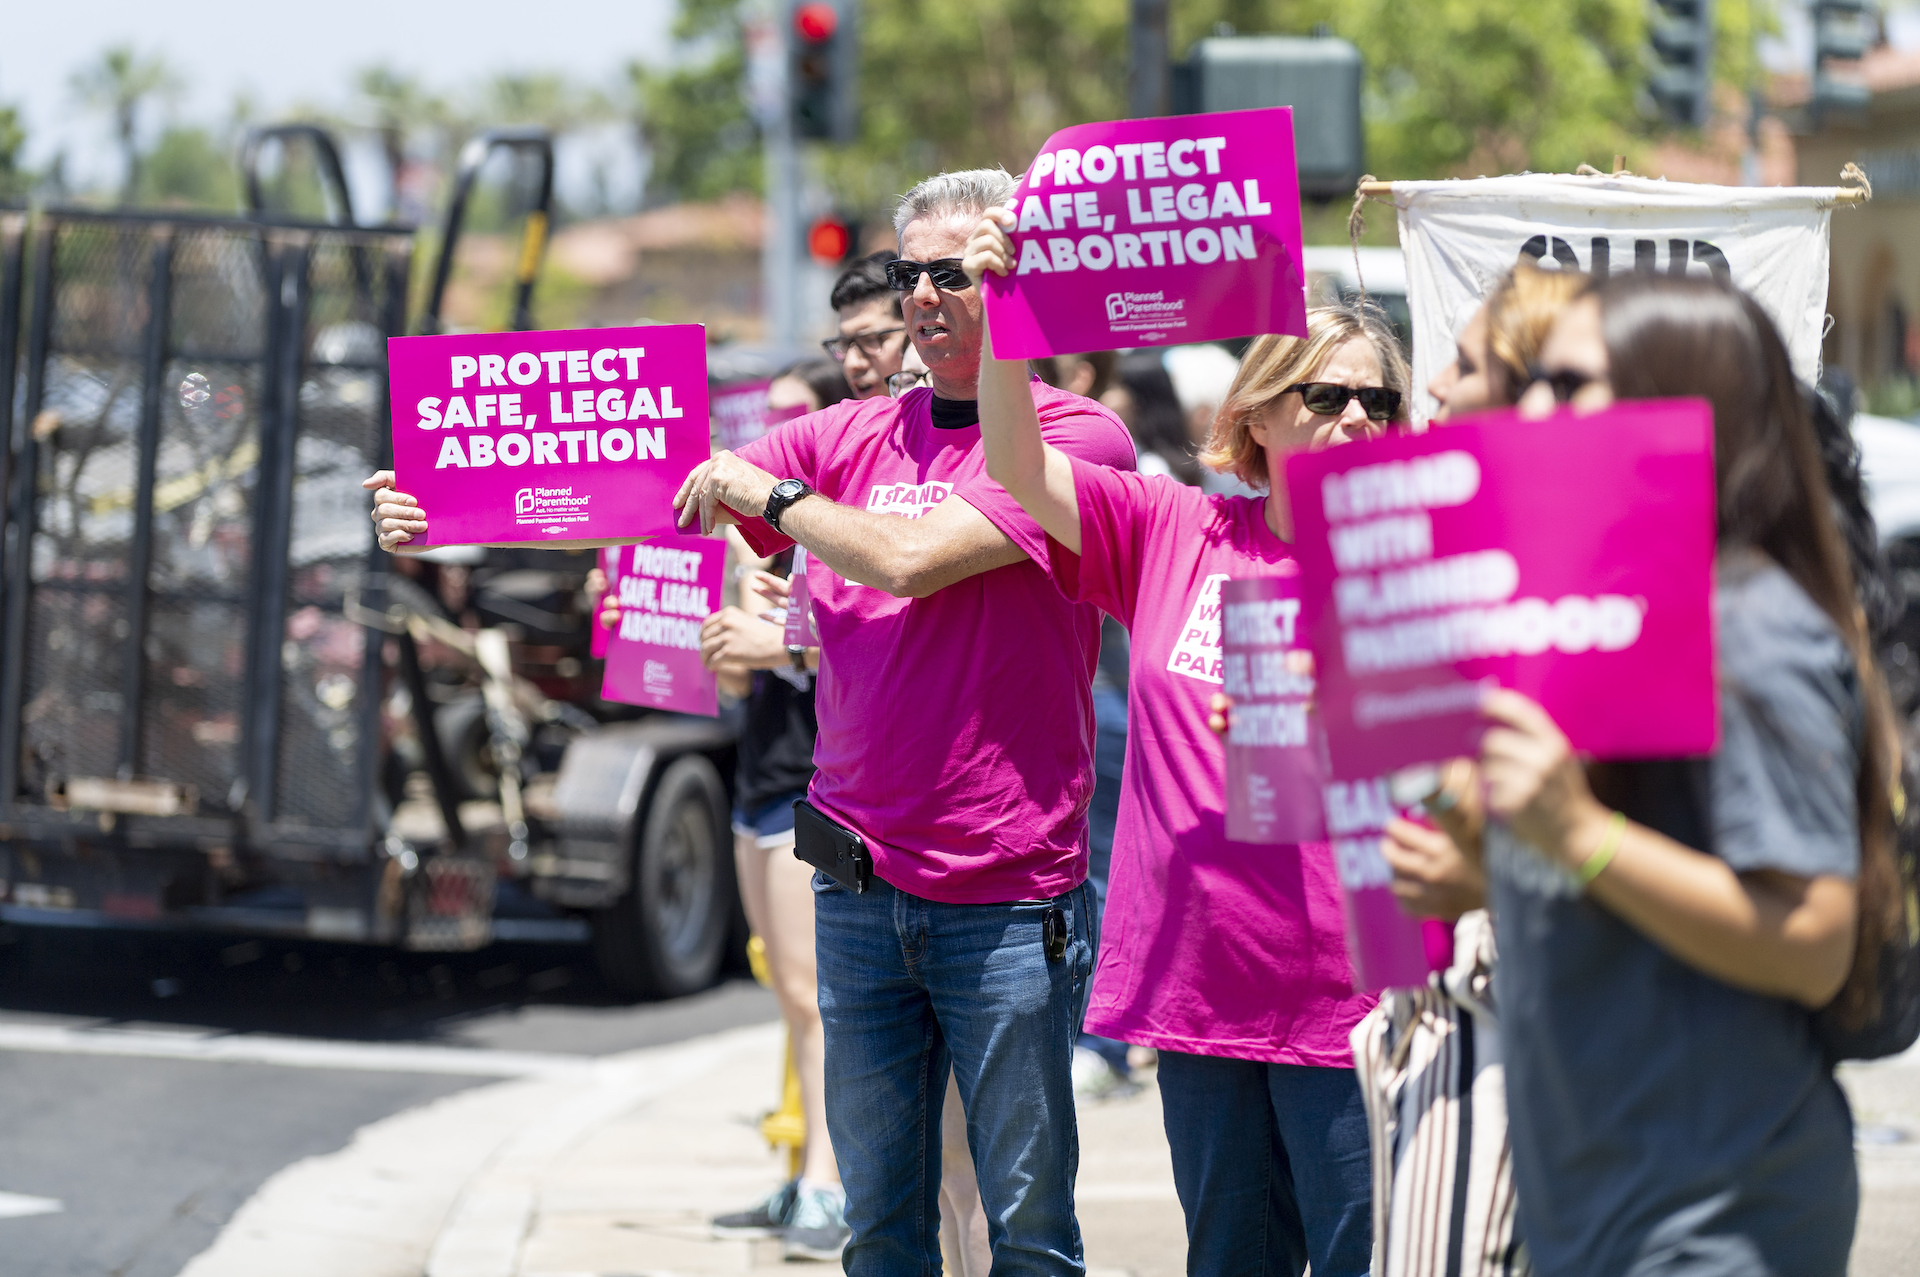 Trump Administration Just Gave Clinics Until September to Prove They're Not Referring Women for Abortions